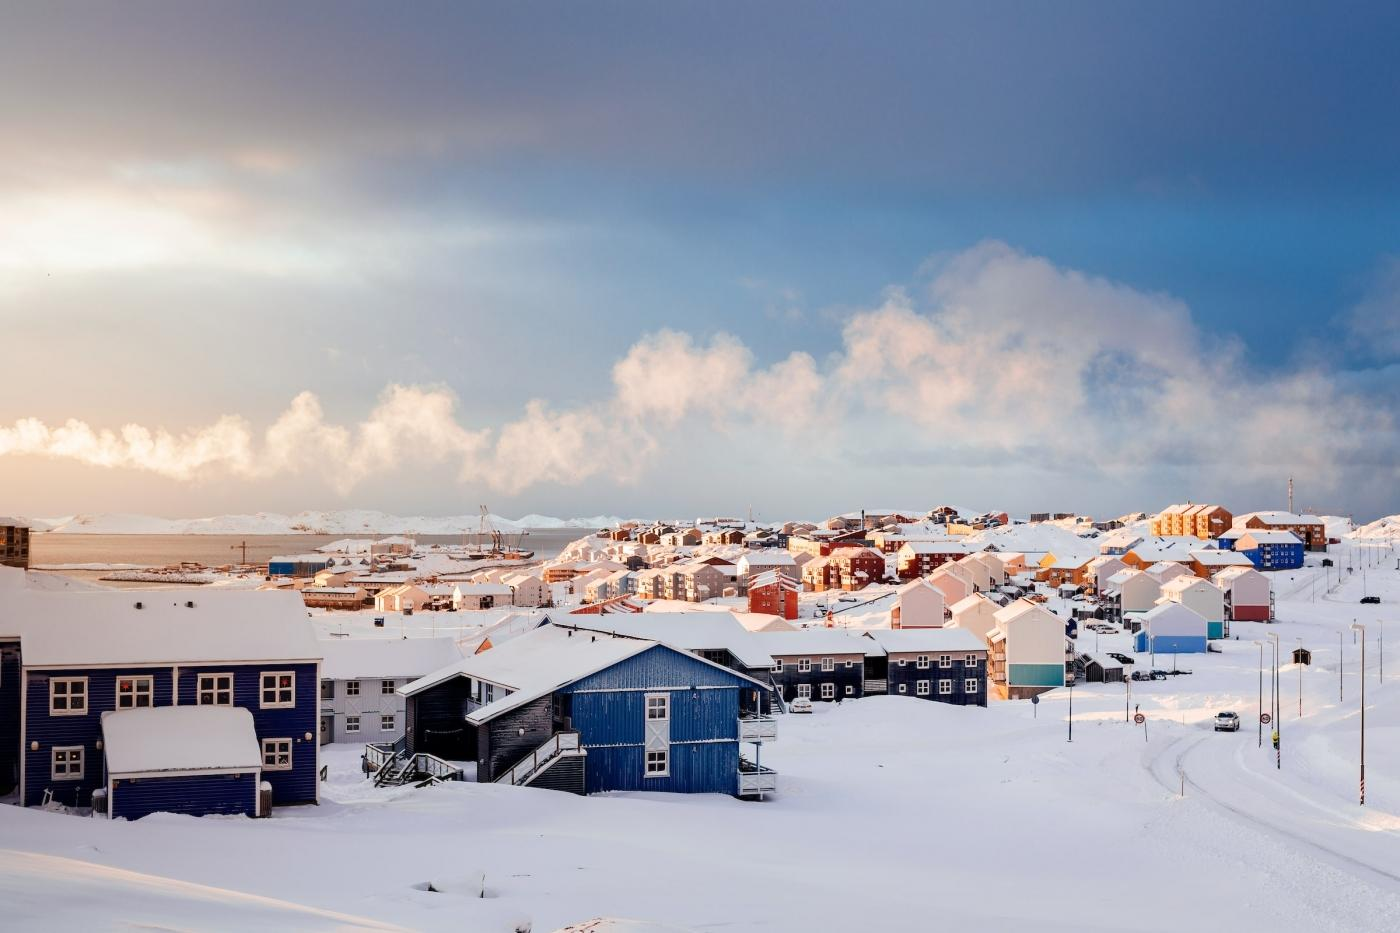 Sunrise over Nuussuaq in Nuuk in Greenland. Photo by Rebecca Gustafsson, Visit Greenland